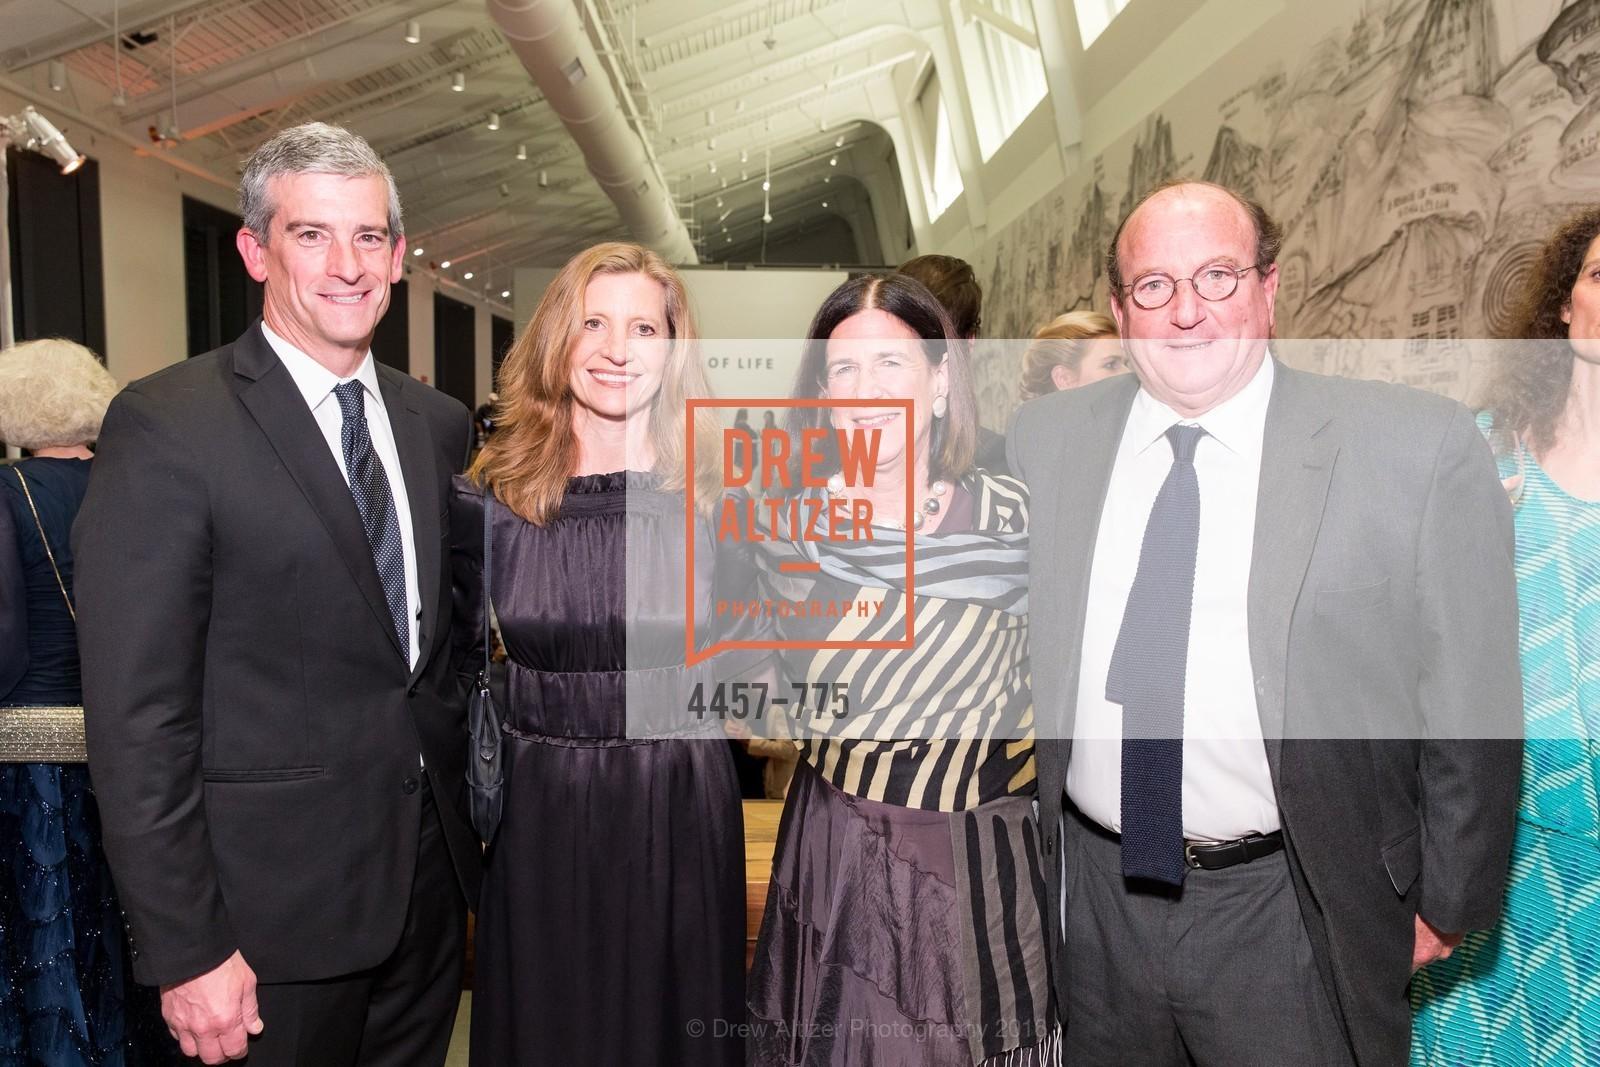 Bud Nagle, Laura Nagle, Ellanor Notides, Russell Notides, UC Berkeley Art Museum & Pacific Film Archive Gala, BAMPFA. 2120 Oxford Street, January 28th, 2016,Drew Altizer, Drew Altizer Photography, full-service agency, private events, San Francisco photographer, photographer california